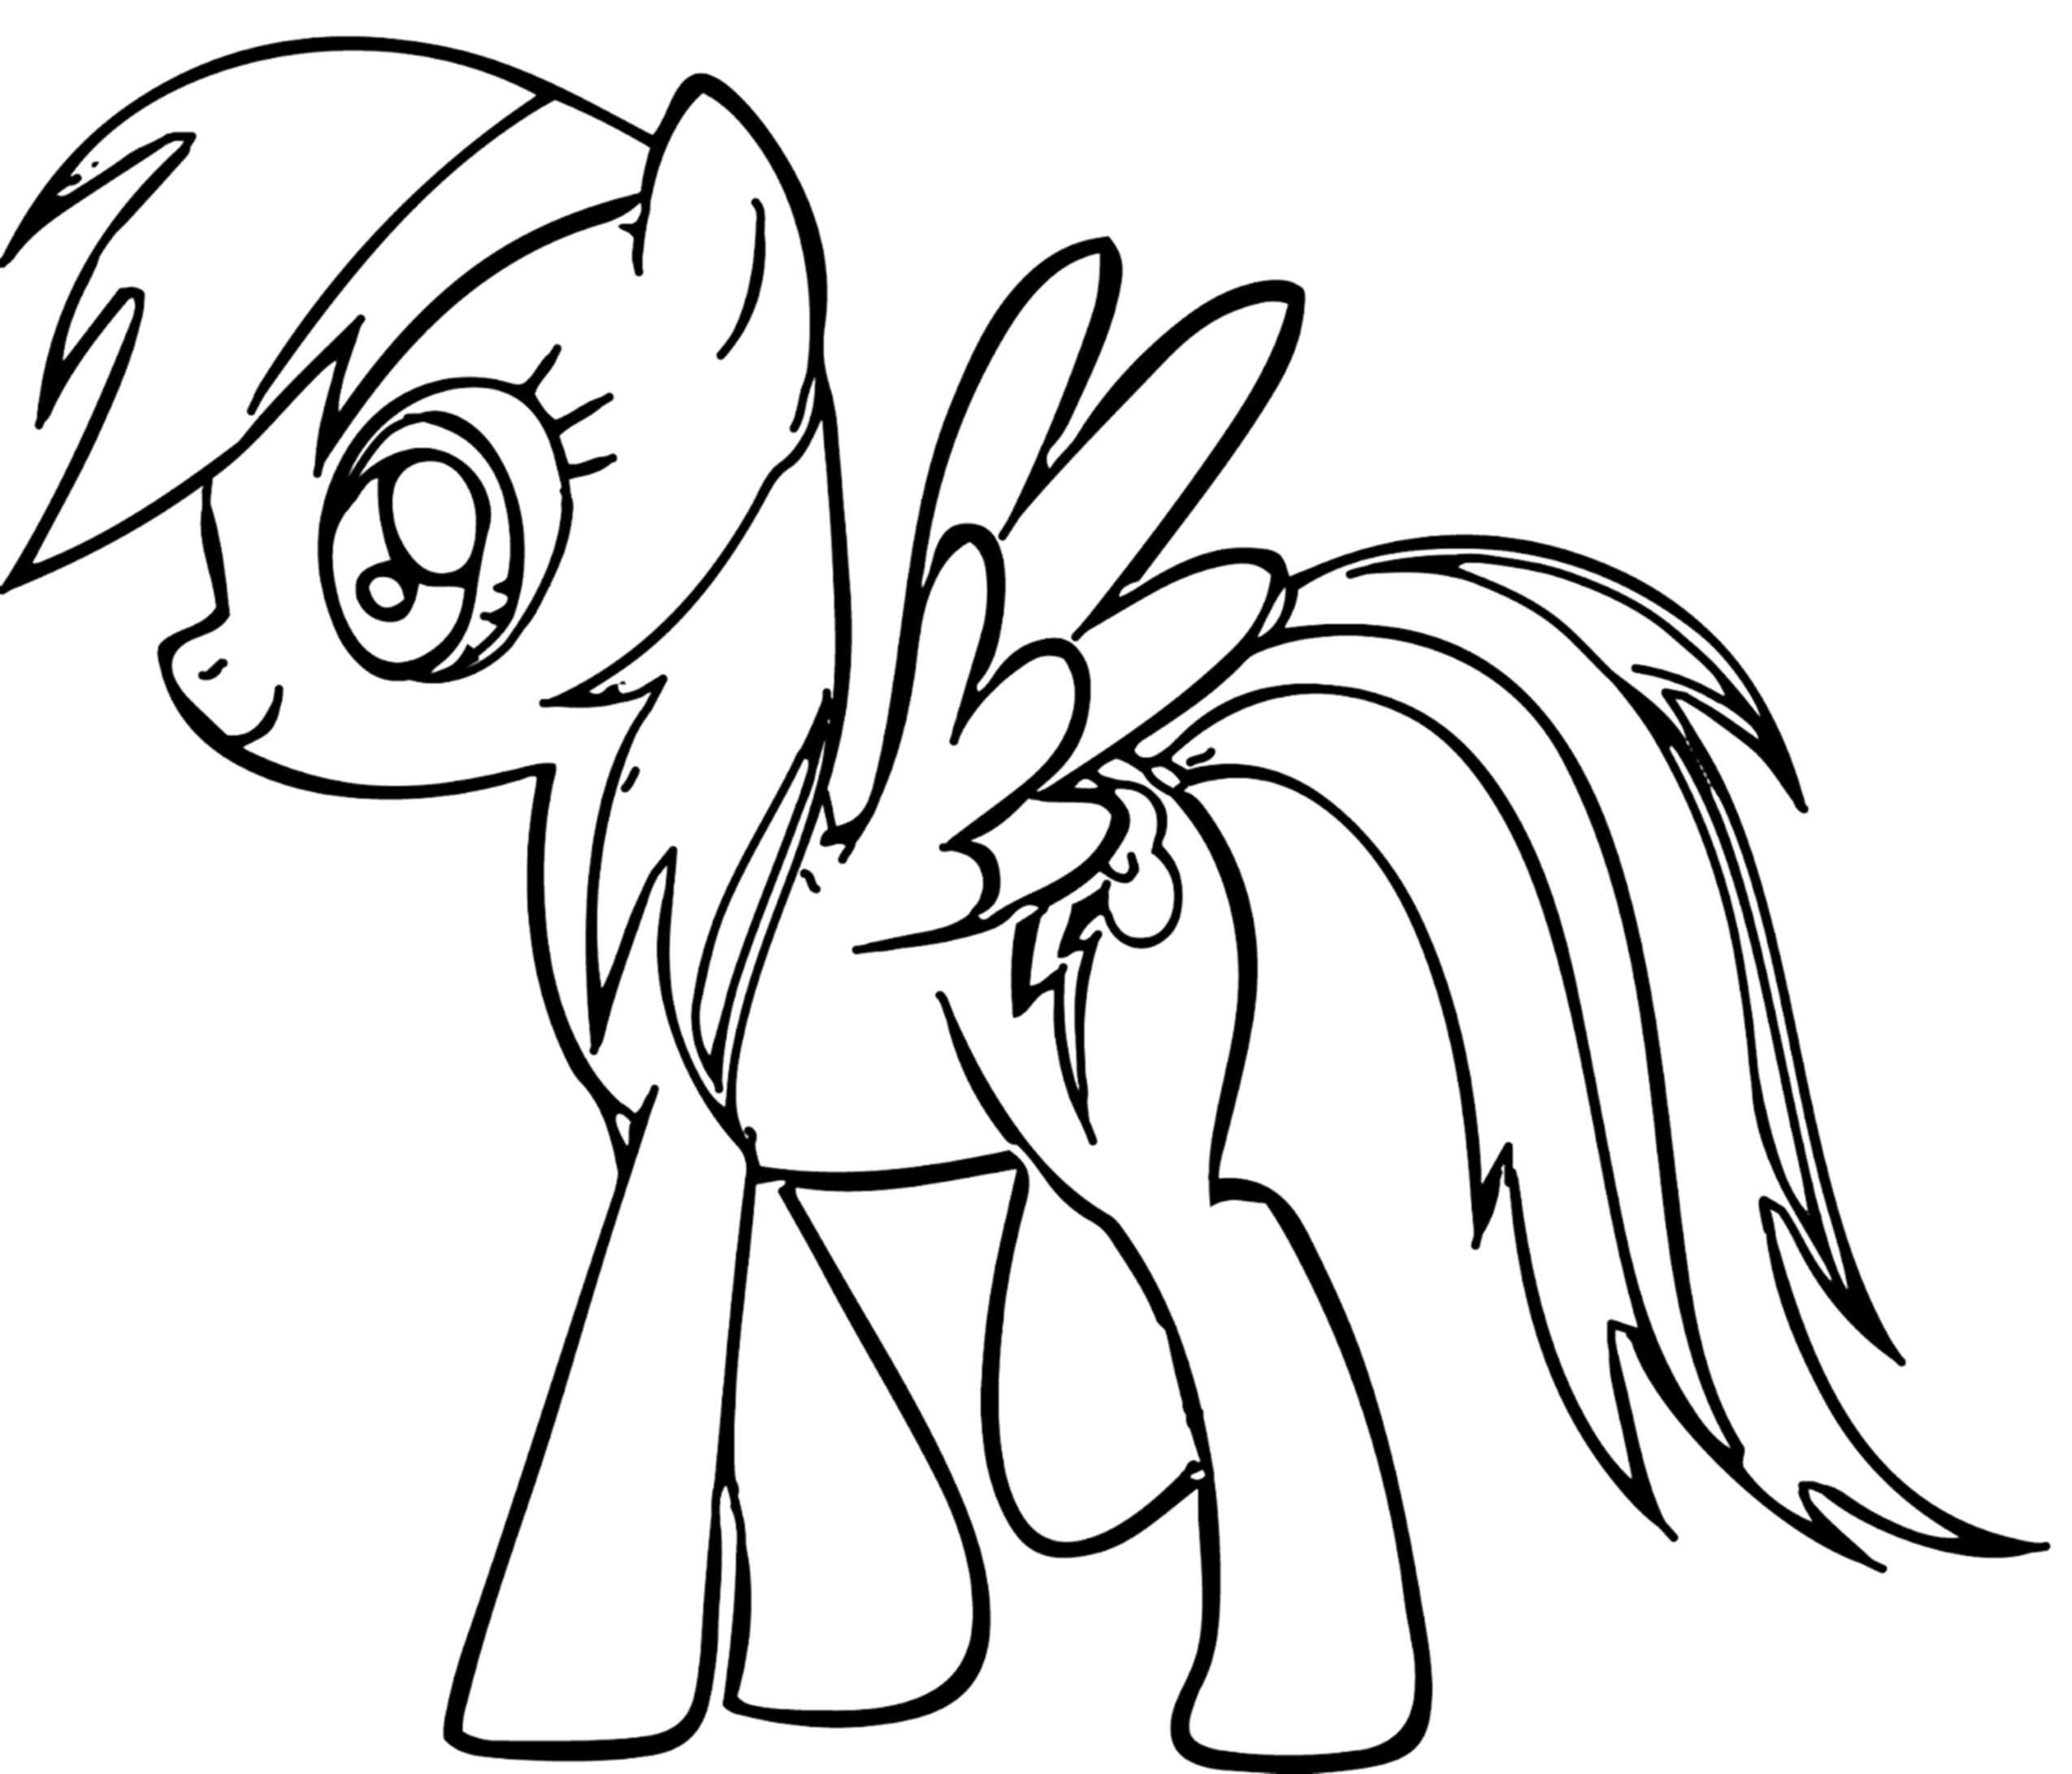 Kids Coloring Picture  Rainbow Dash Coloring Pages Best Coloring Pages For Kids